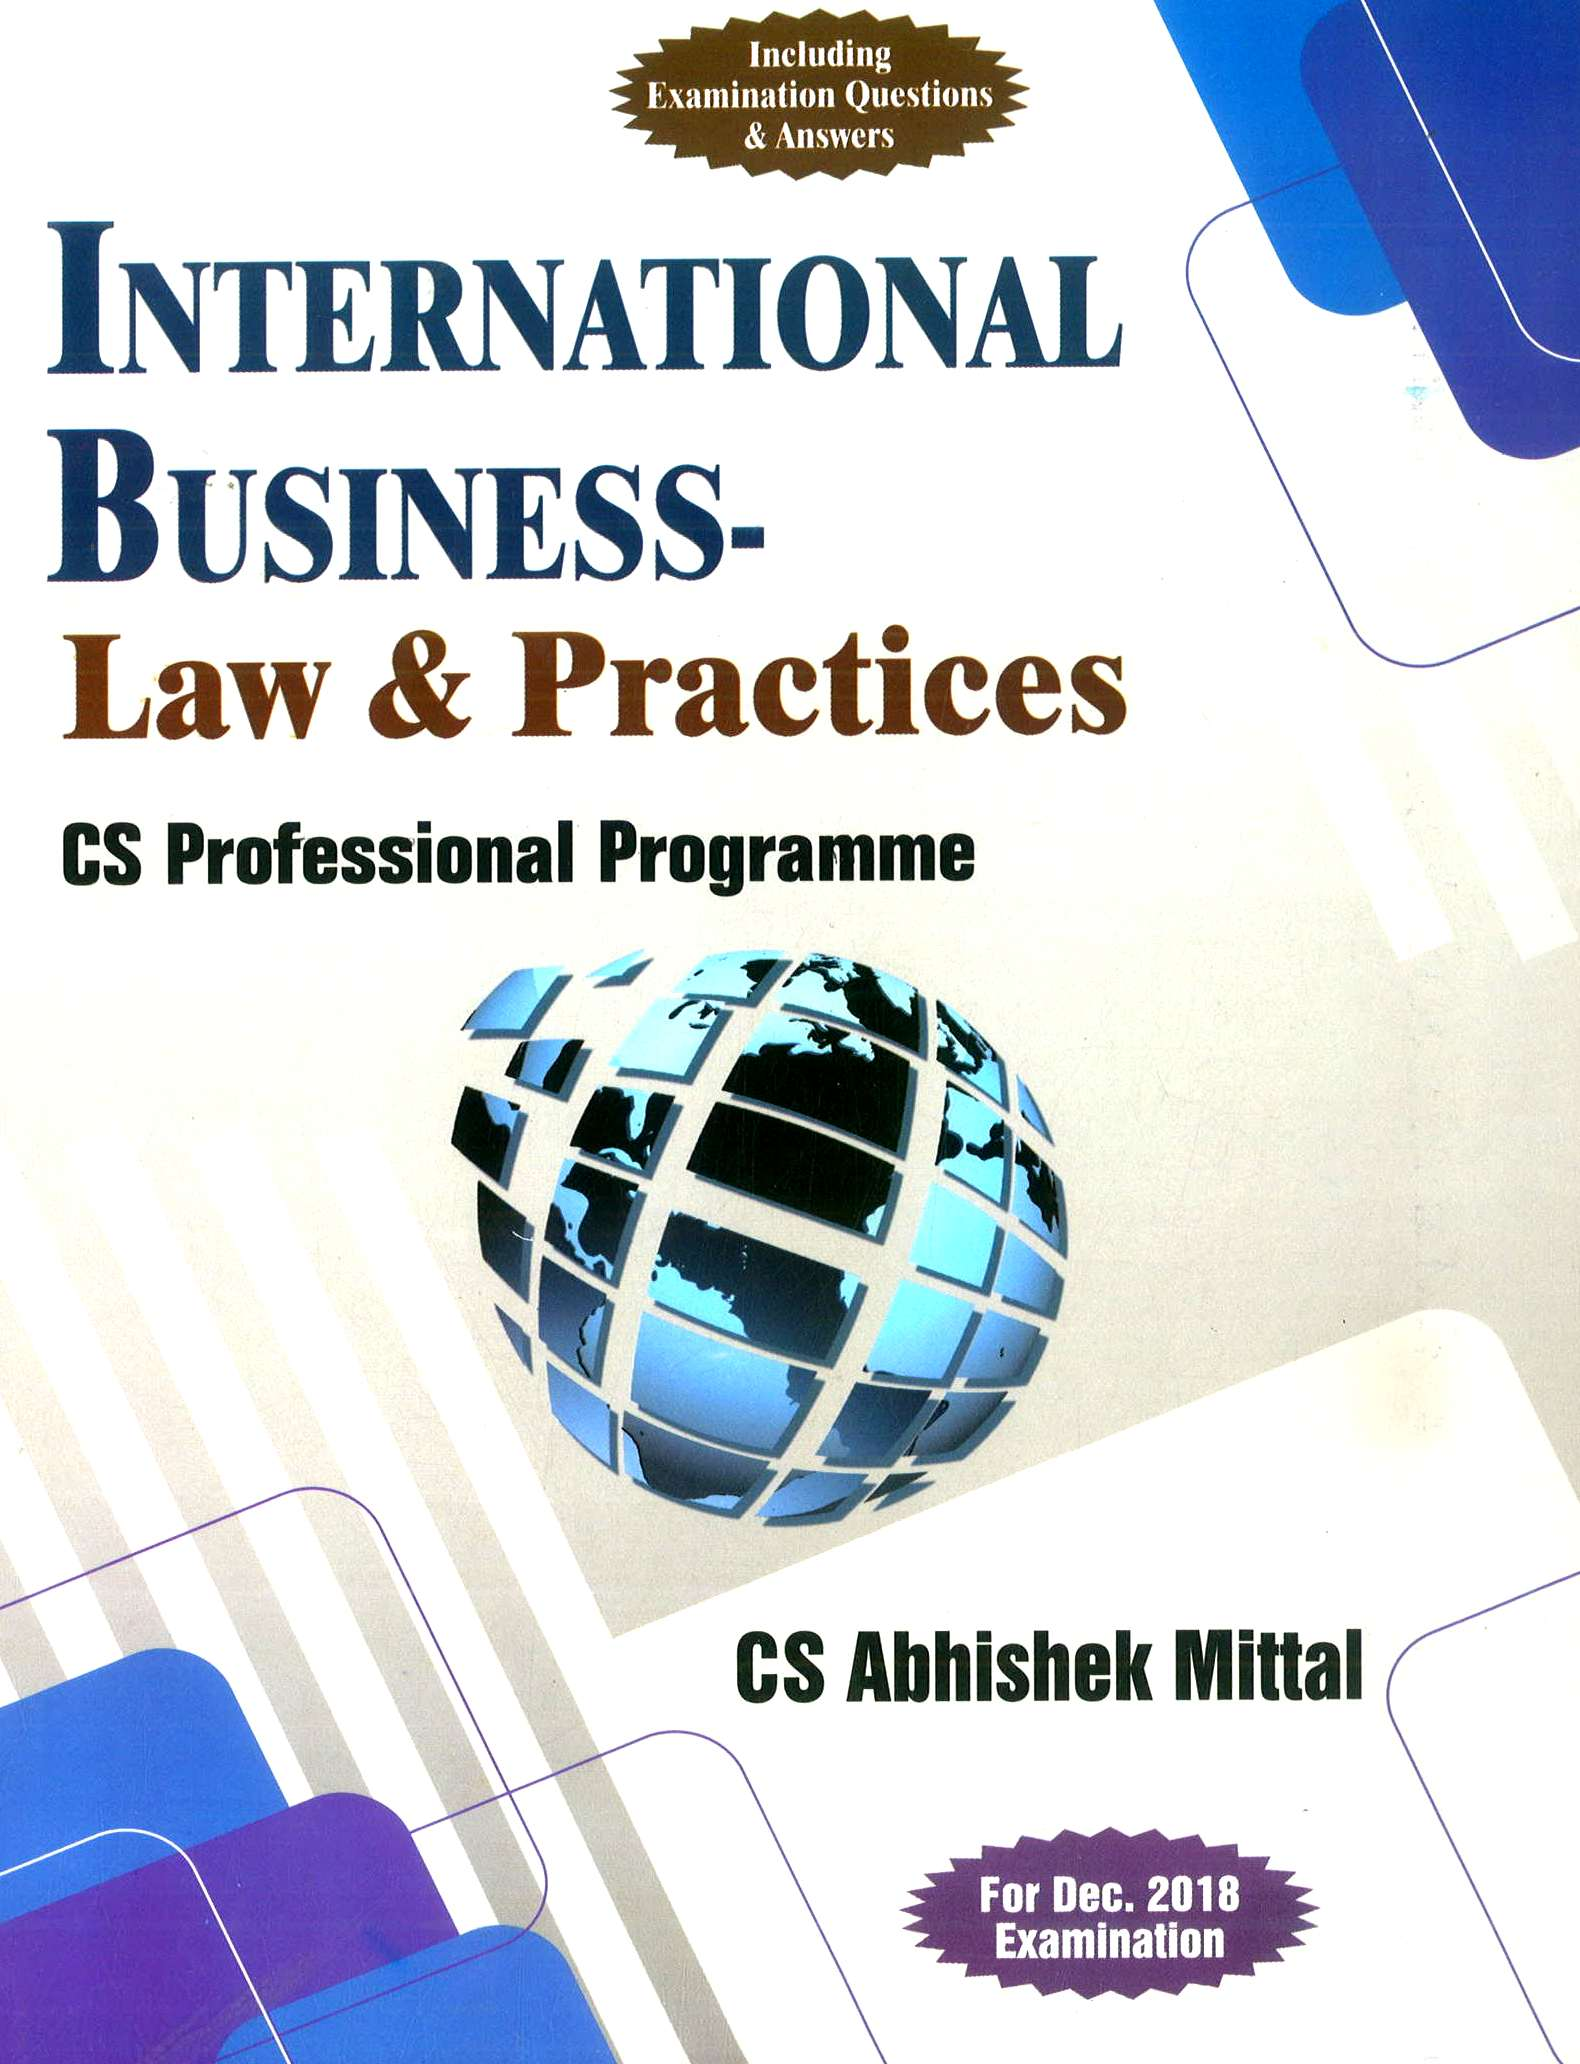 Sangeet kedia CS Professional International Business Law and Practices By Abhishek Mittal Applicable for Dec 2018 Exam